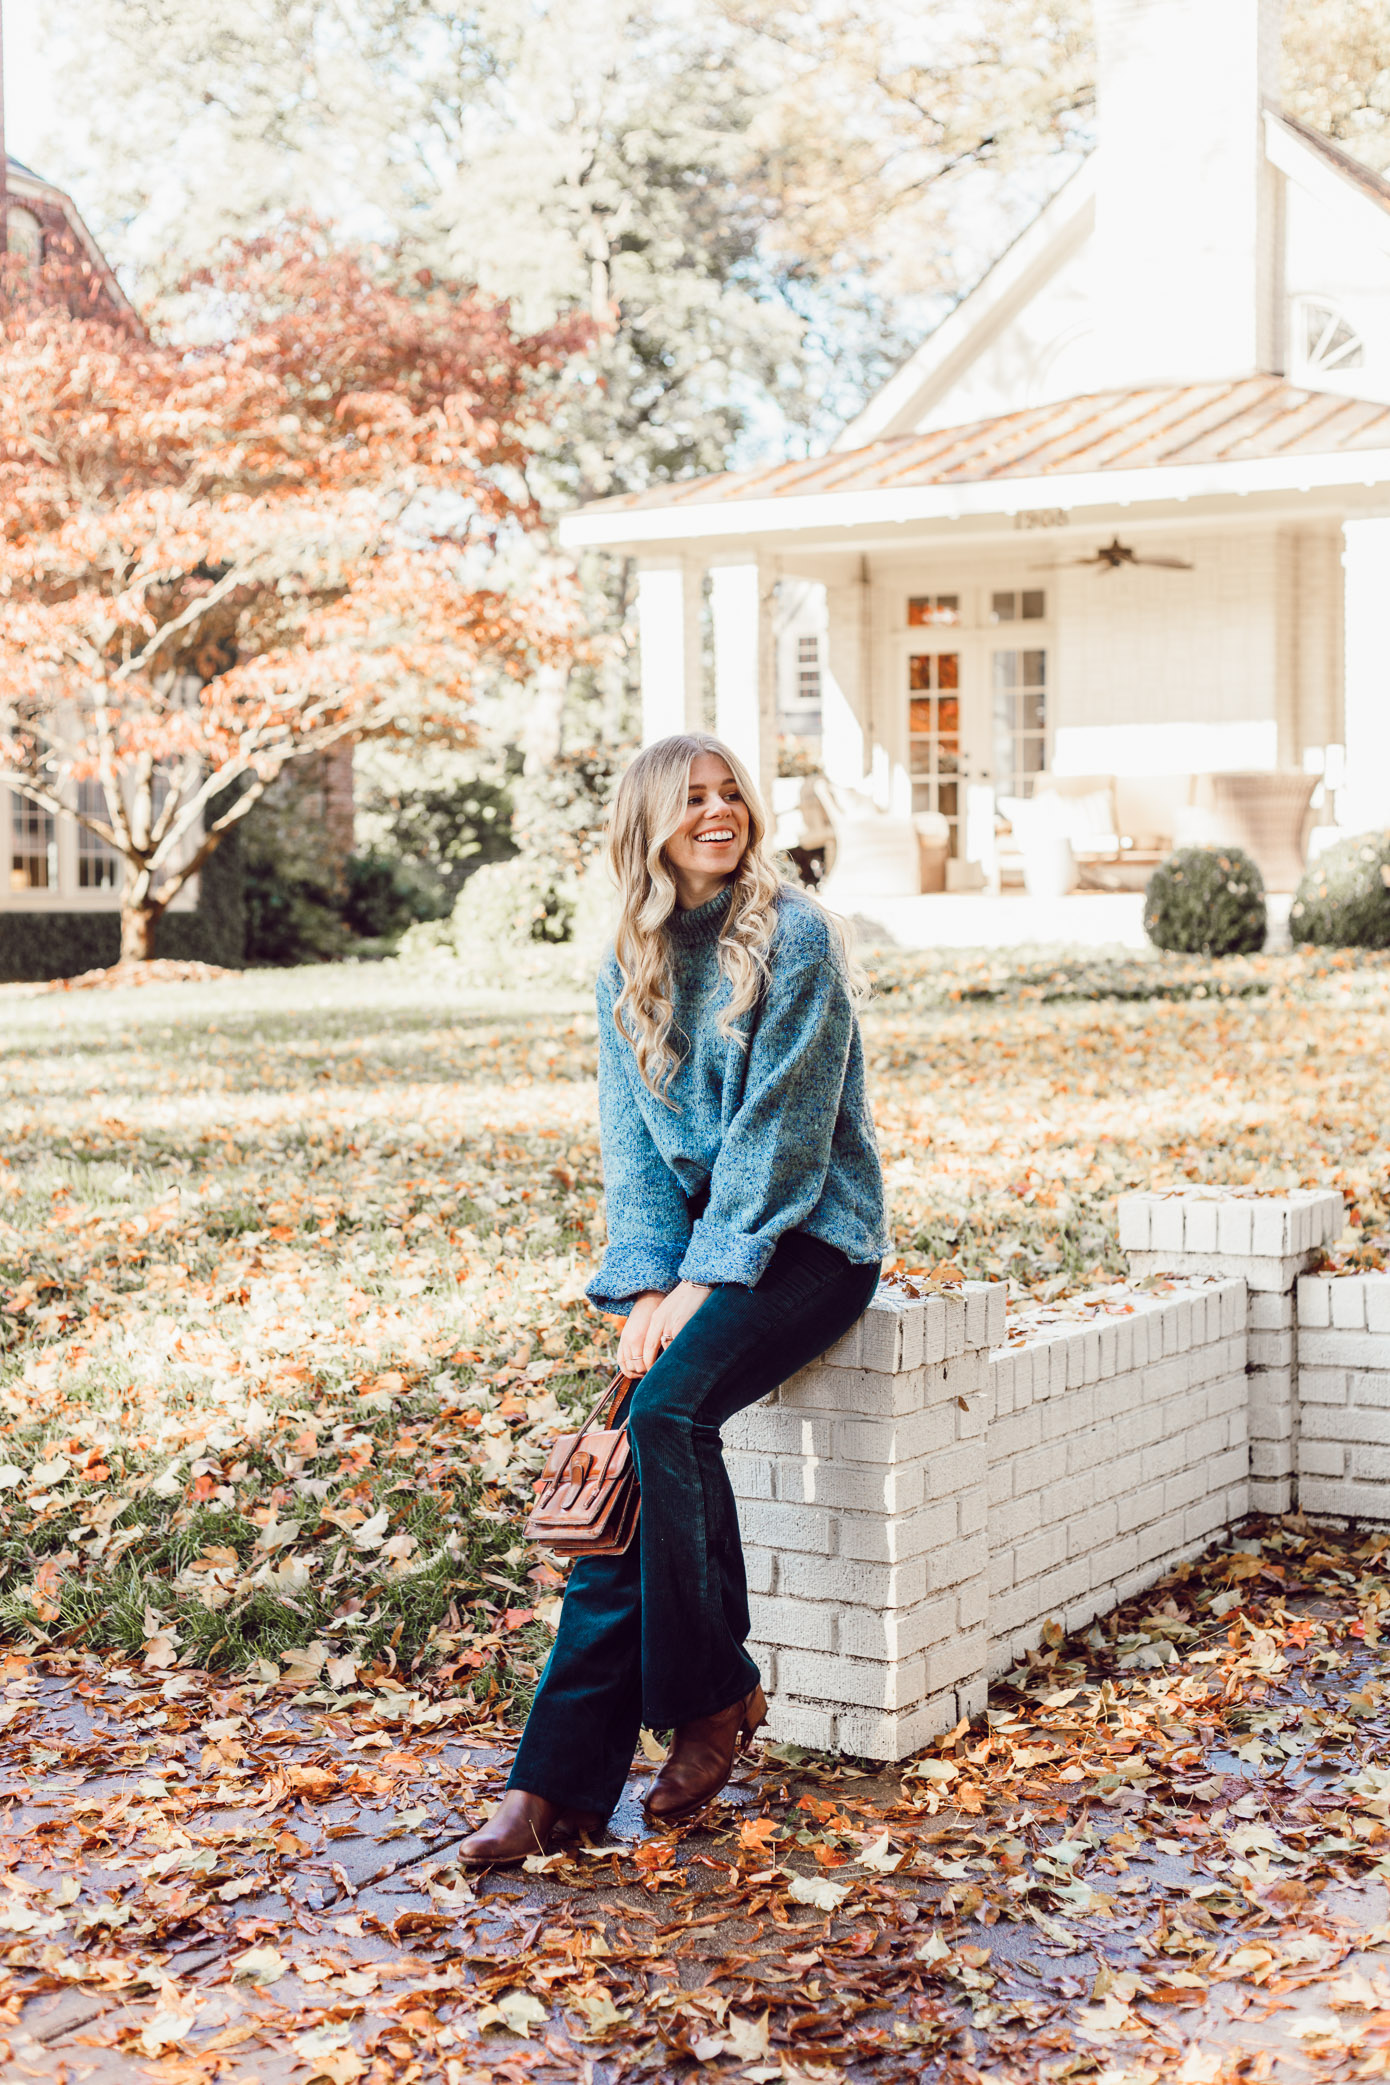 Anthropologie Sparkle Knit Turtleneck Sweater, Styling Corduroys for Winter | Must Try Winter Trend featured on Louella Reese Life & Style Blog